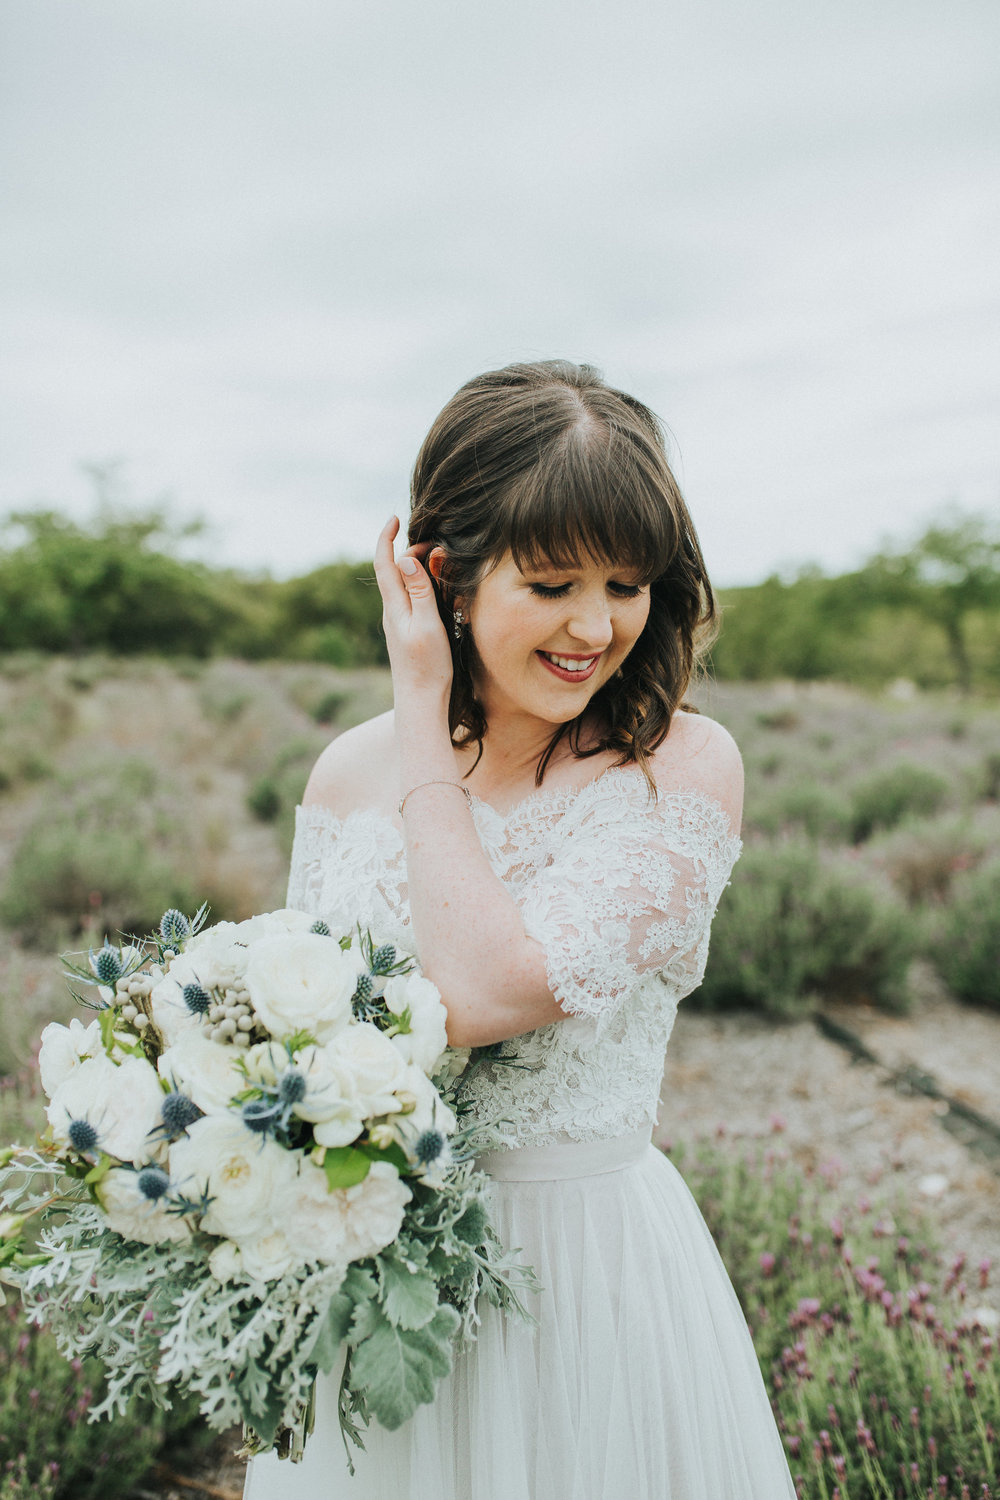 I wanted my dress to be simple and romantic. I fell in love with the subtle mocha undertones in the skirt and ribbon belt, and paired it with a delicate lace off the shoulder jacket.